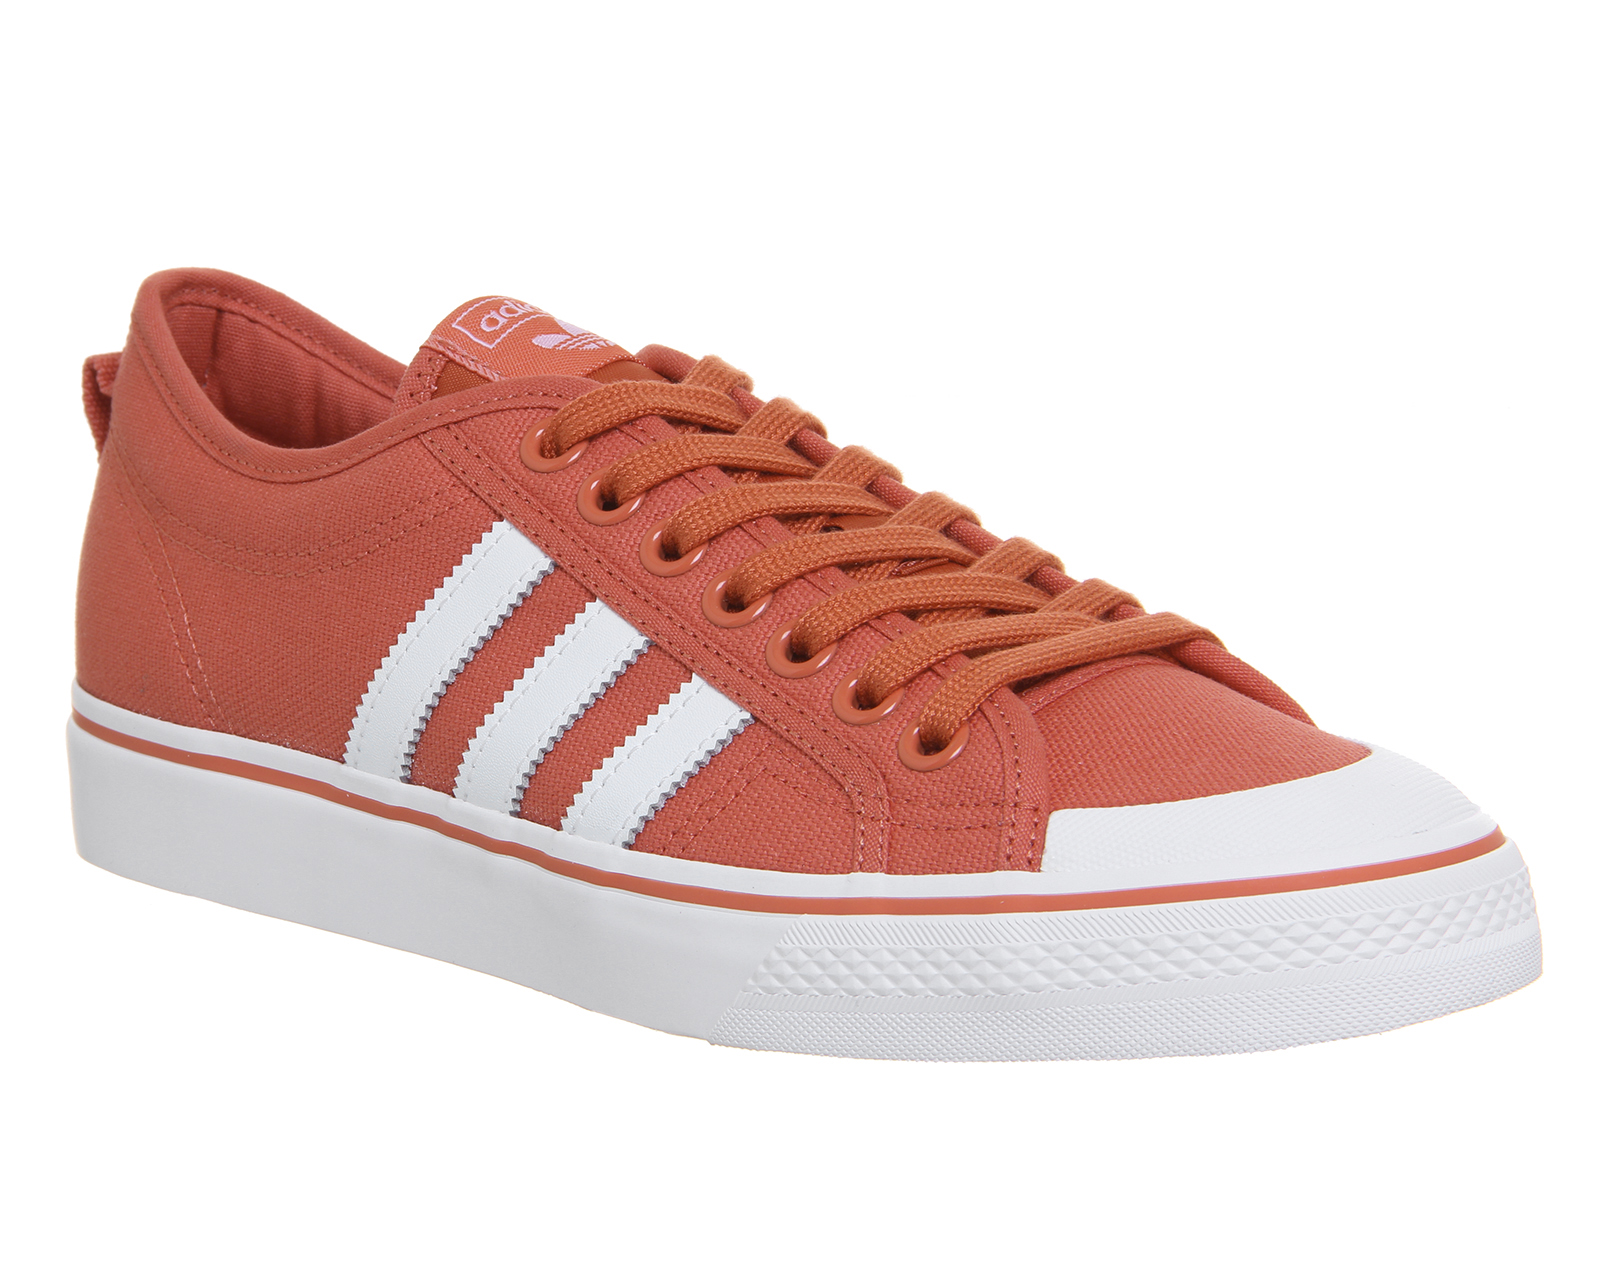 c418ee0db36 Sentinel Adidas Nizza Trainers Trace Scarlet Trainers Shoes